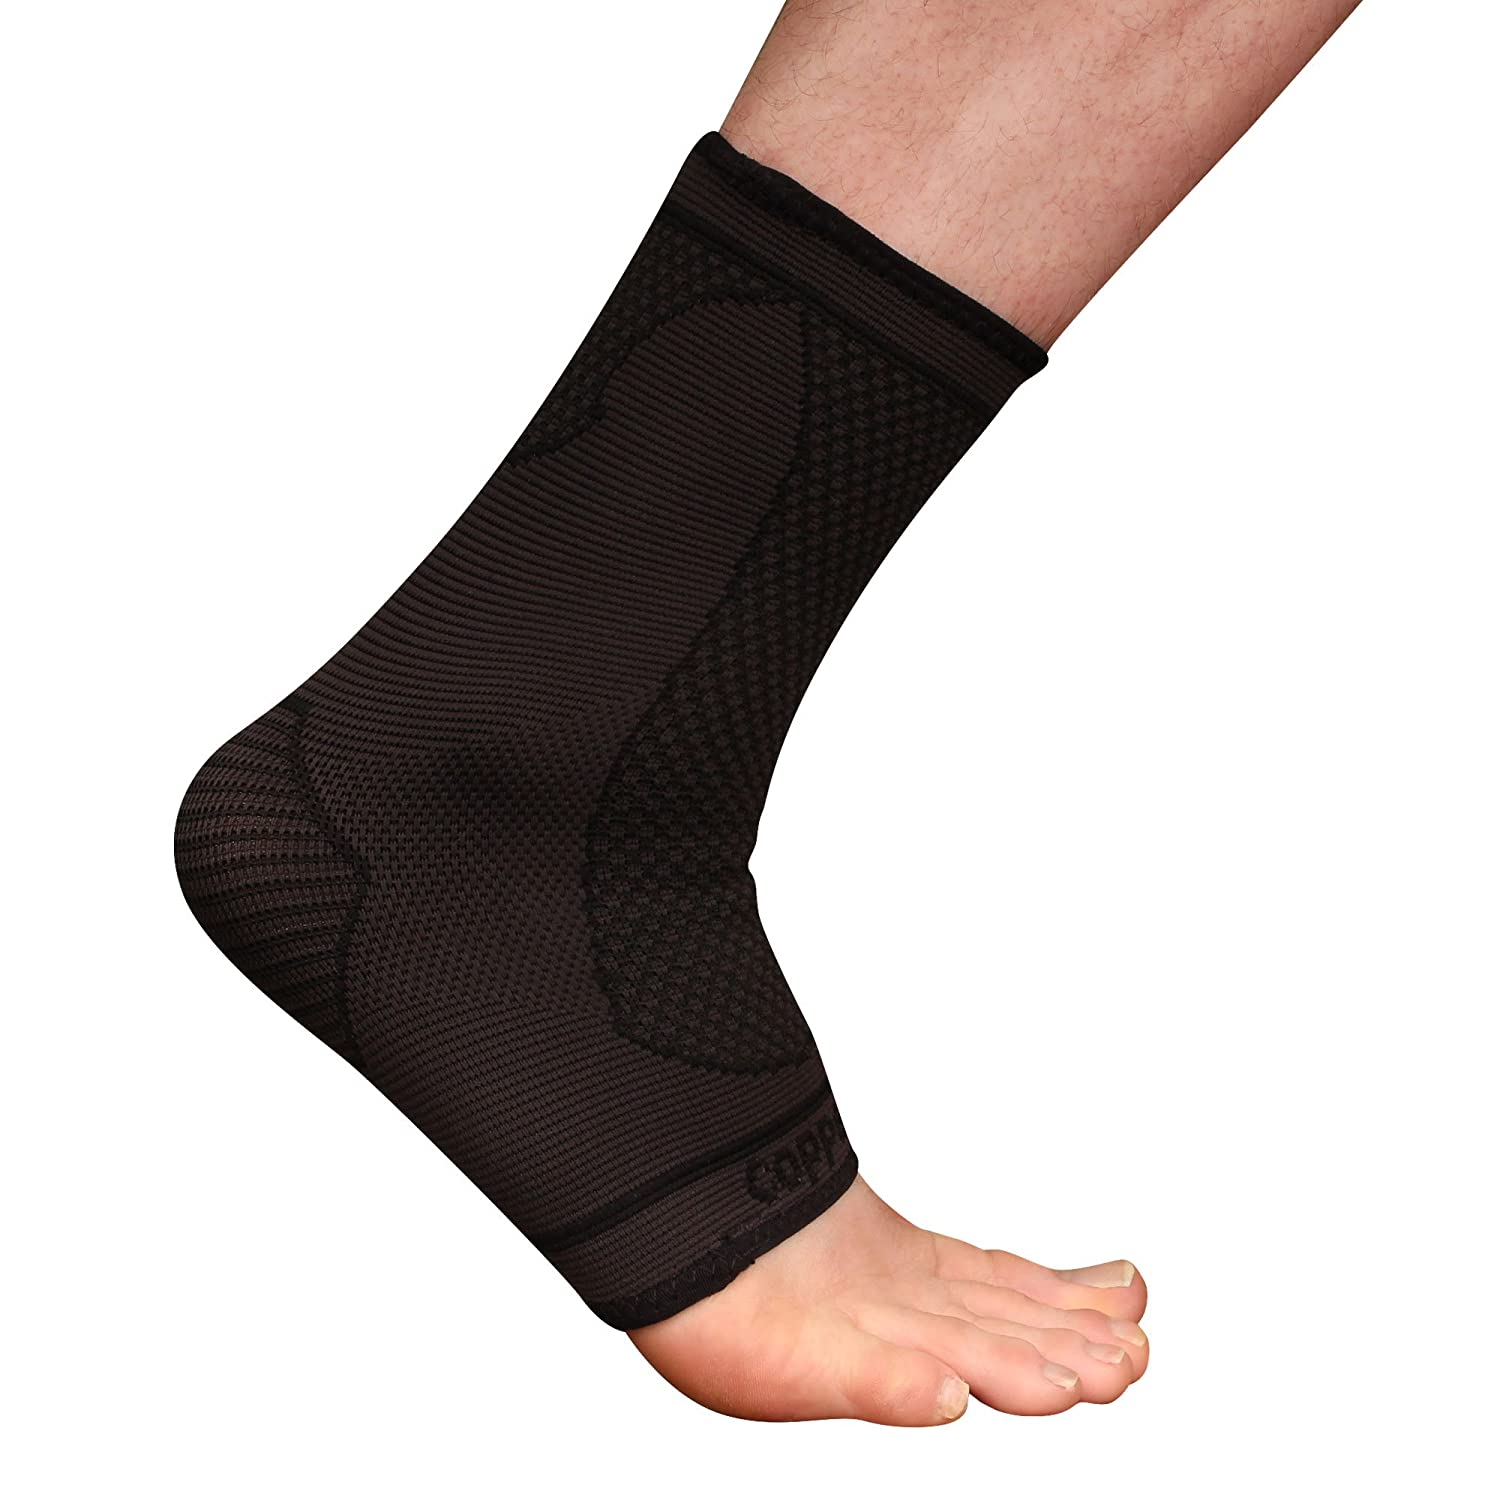 Copper D 1 Pair Black Rayon from Bamboo Copper Compression Ankle for Relief from Injuries and more or Comfort Support for Every Day Uses Small Medium